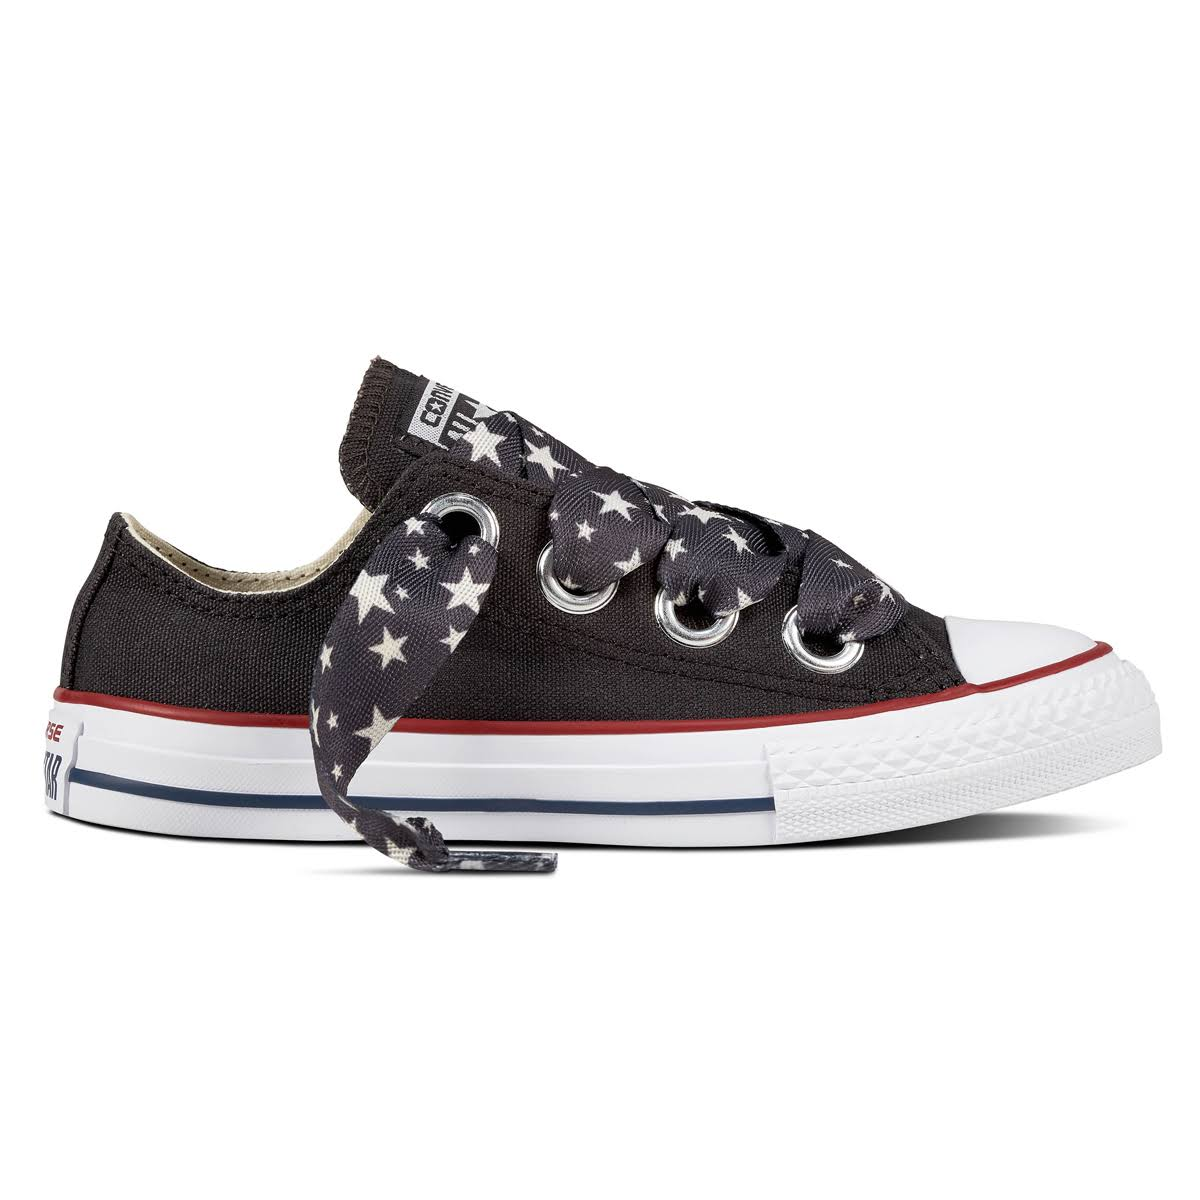 Chuck School Eyelets Star Taylor Converse Ox Kids Casual Big Shoe Pre All d6x1gn